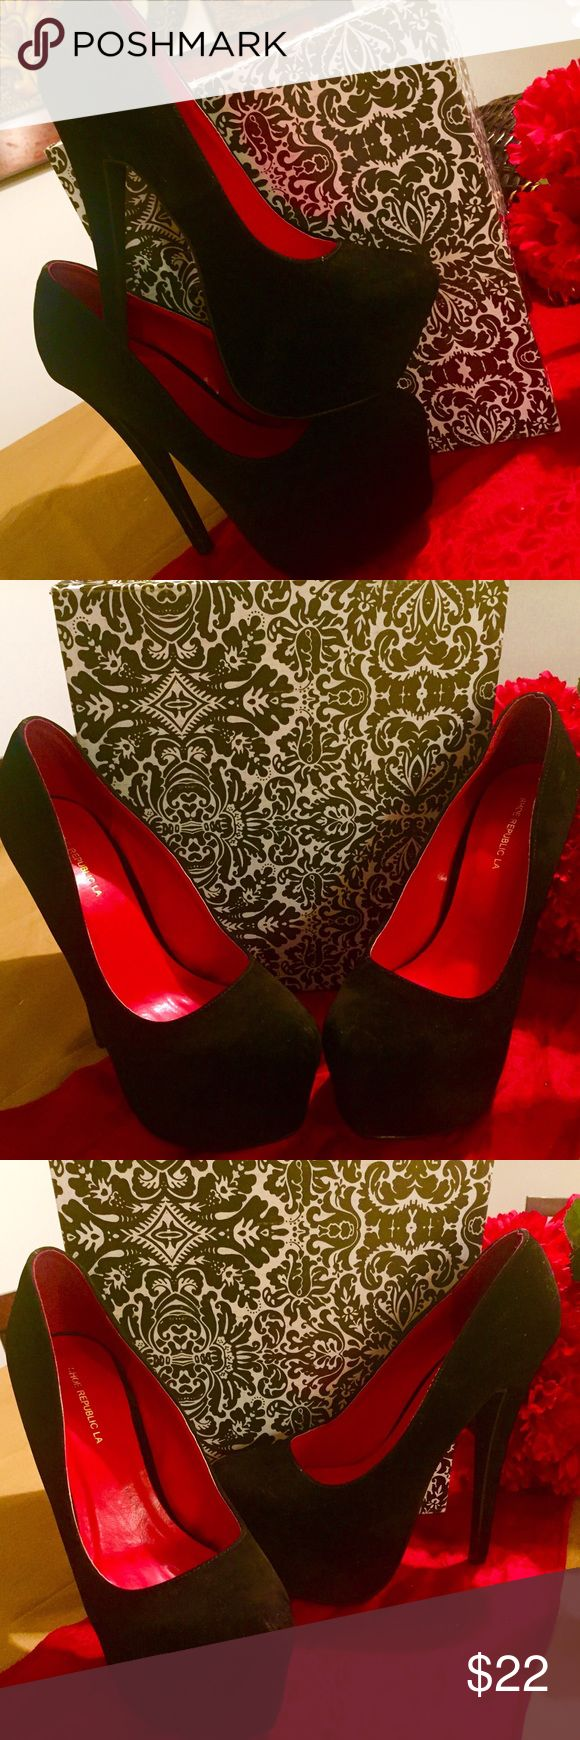 Sexy Black Suede Red Interior HIGH Heels! ❤️ Sexy Black suede HIGH pumps with red interior! Super New...never used! Still has tag and box! VERY HIGH HEELS...For the professional heel walkers!! Bought from a Shoe Department, priced at $29.99! Size 10 but fits size 9. 1st come 1st serve!!! Like, Share, Buy! Love Yazzii❤️ Shoe Republic LA Shoes Heels